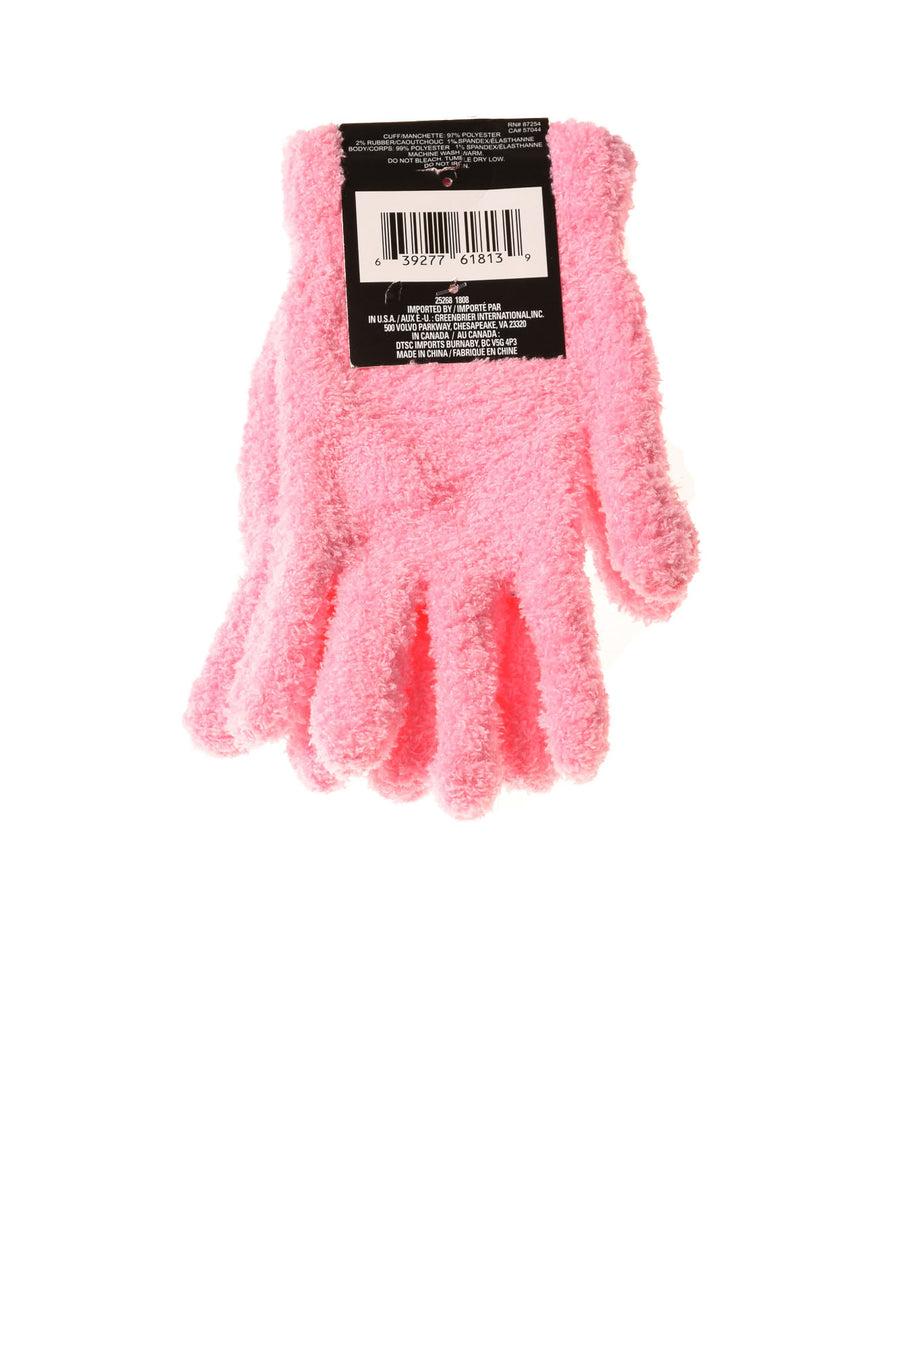 NEW Snugadoo Too Women's Gloves One Size Pink